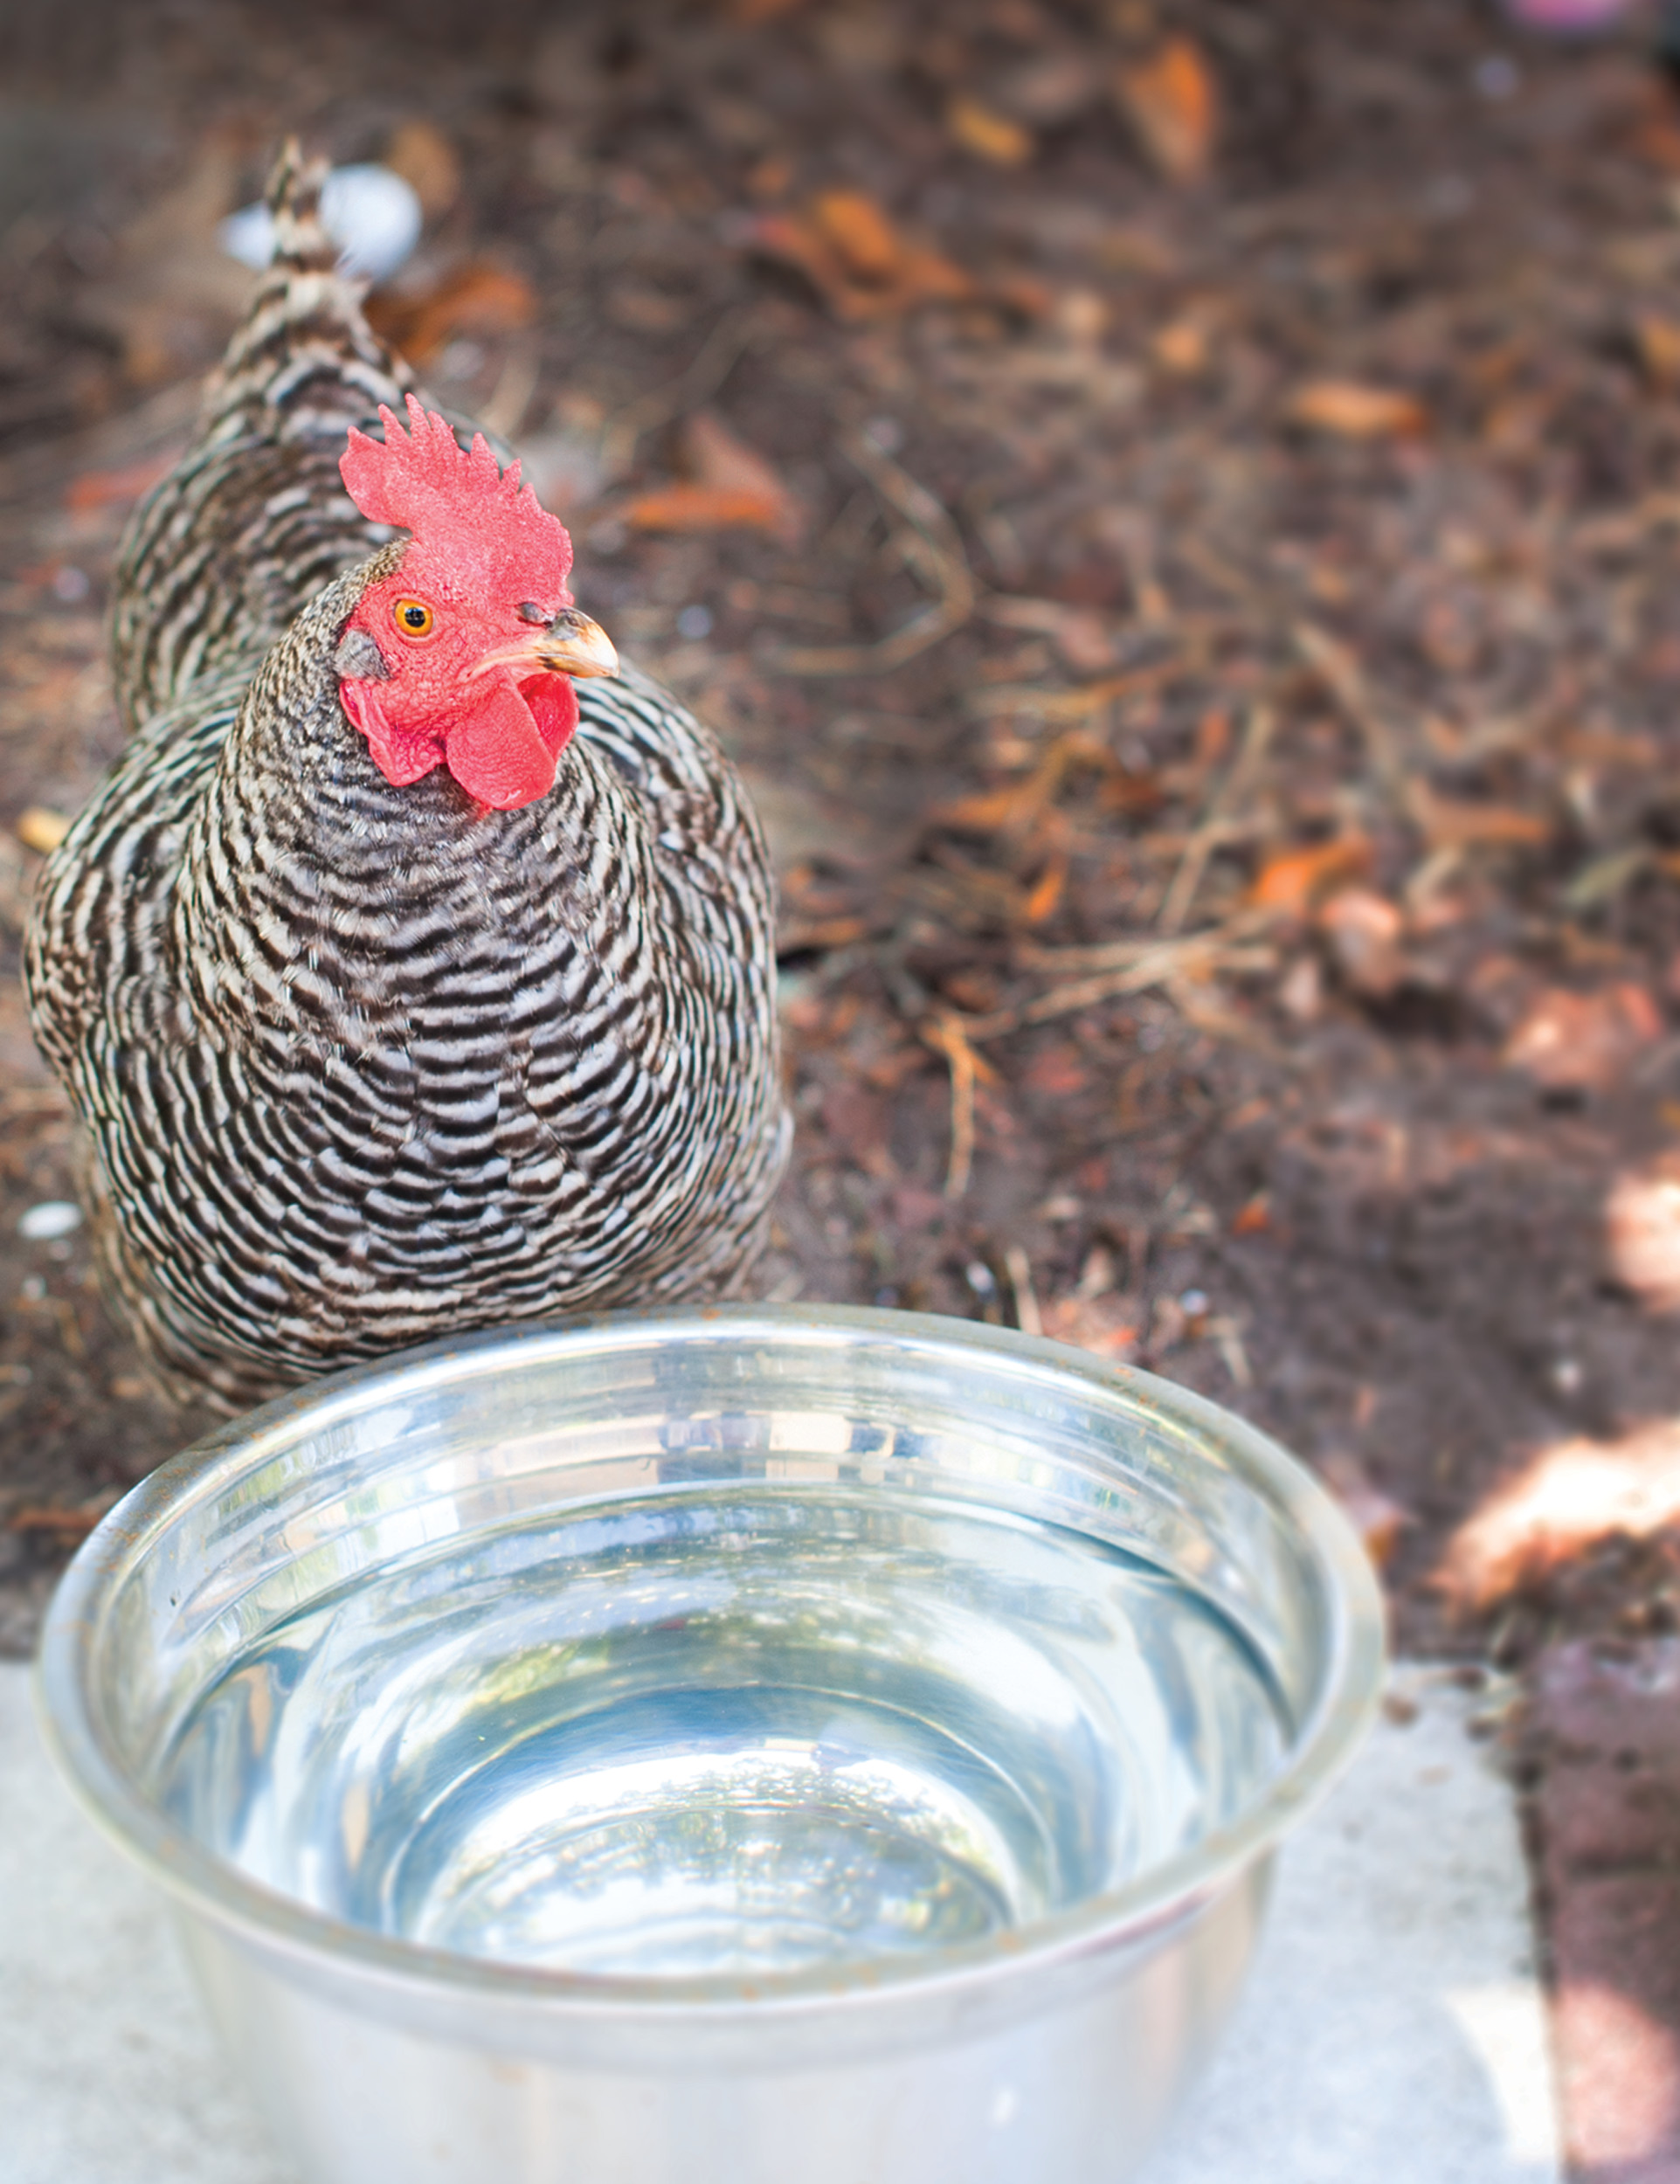 This Plymouth Barred Rock named Attila has her own waterbowl and lives with two other chickens in Elena Smith's St. Augustine backyard.